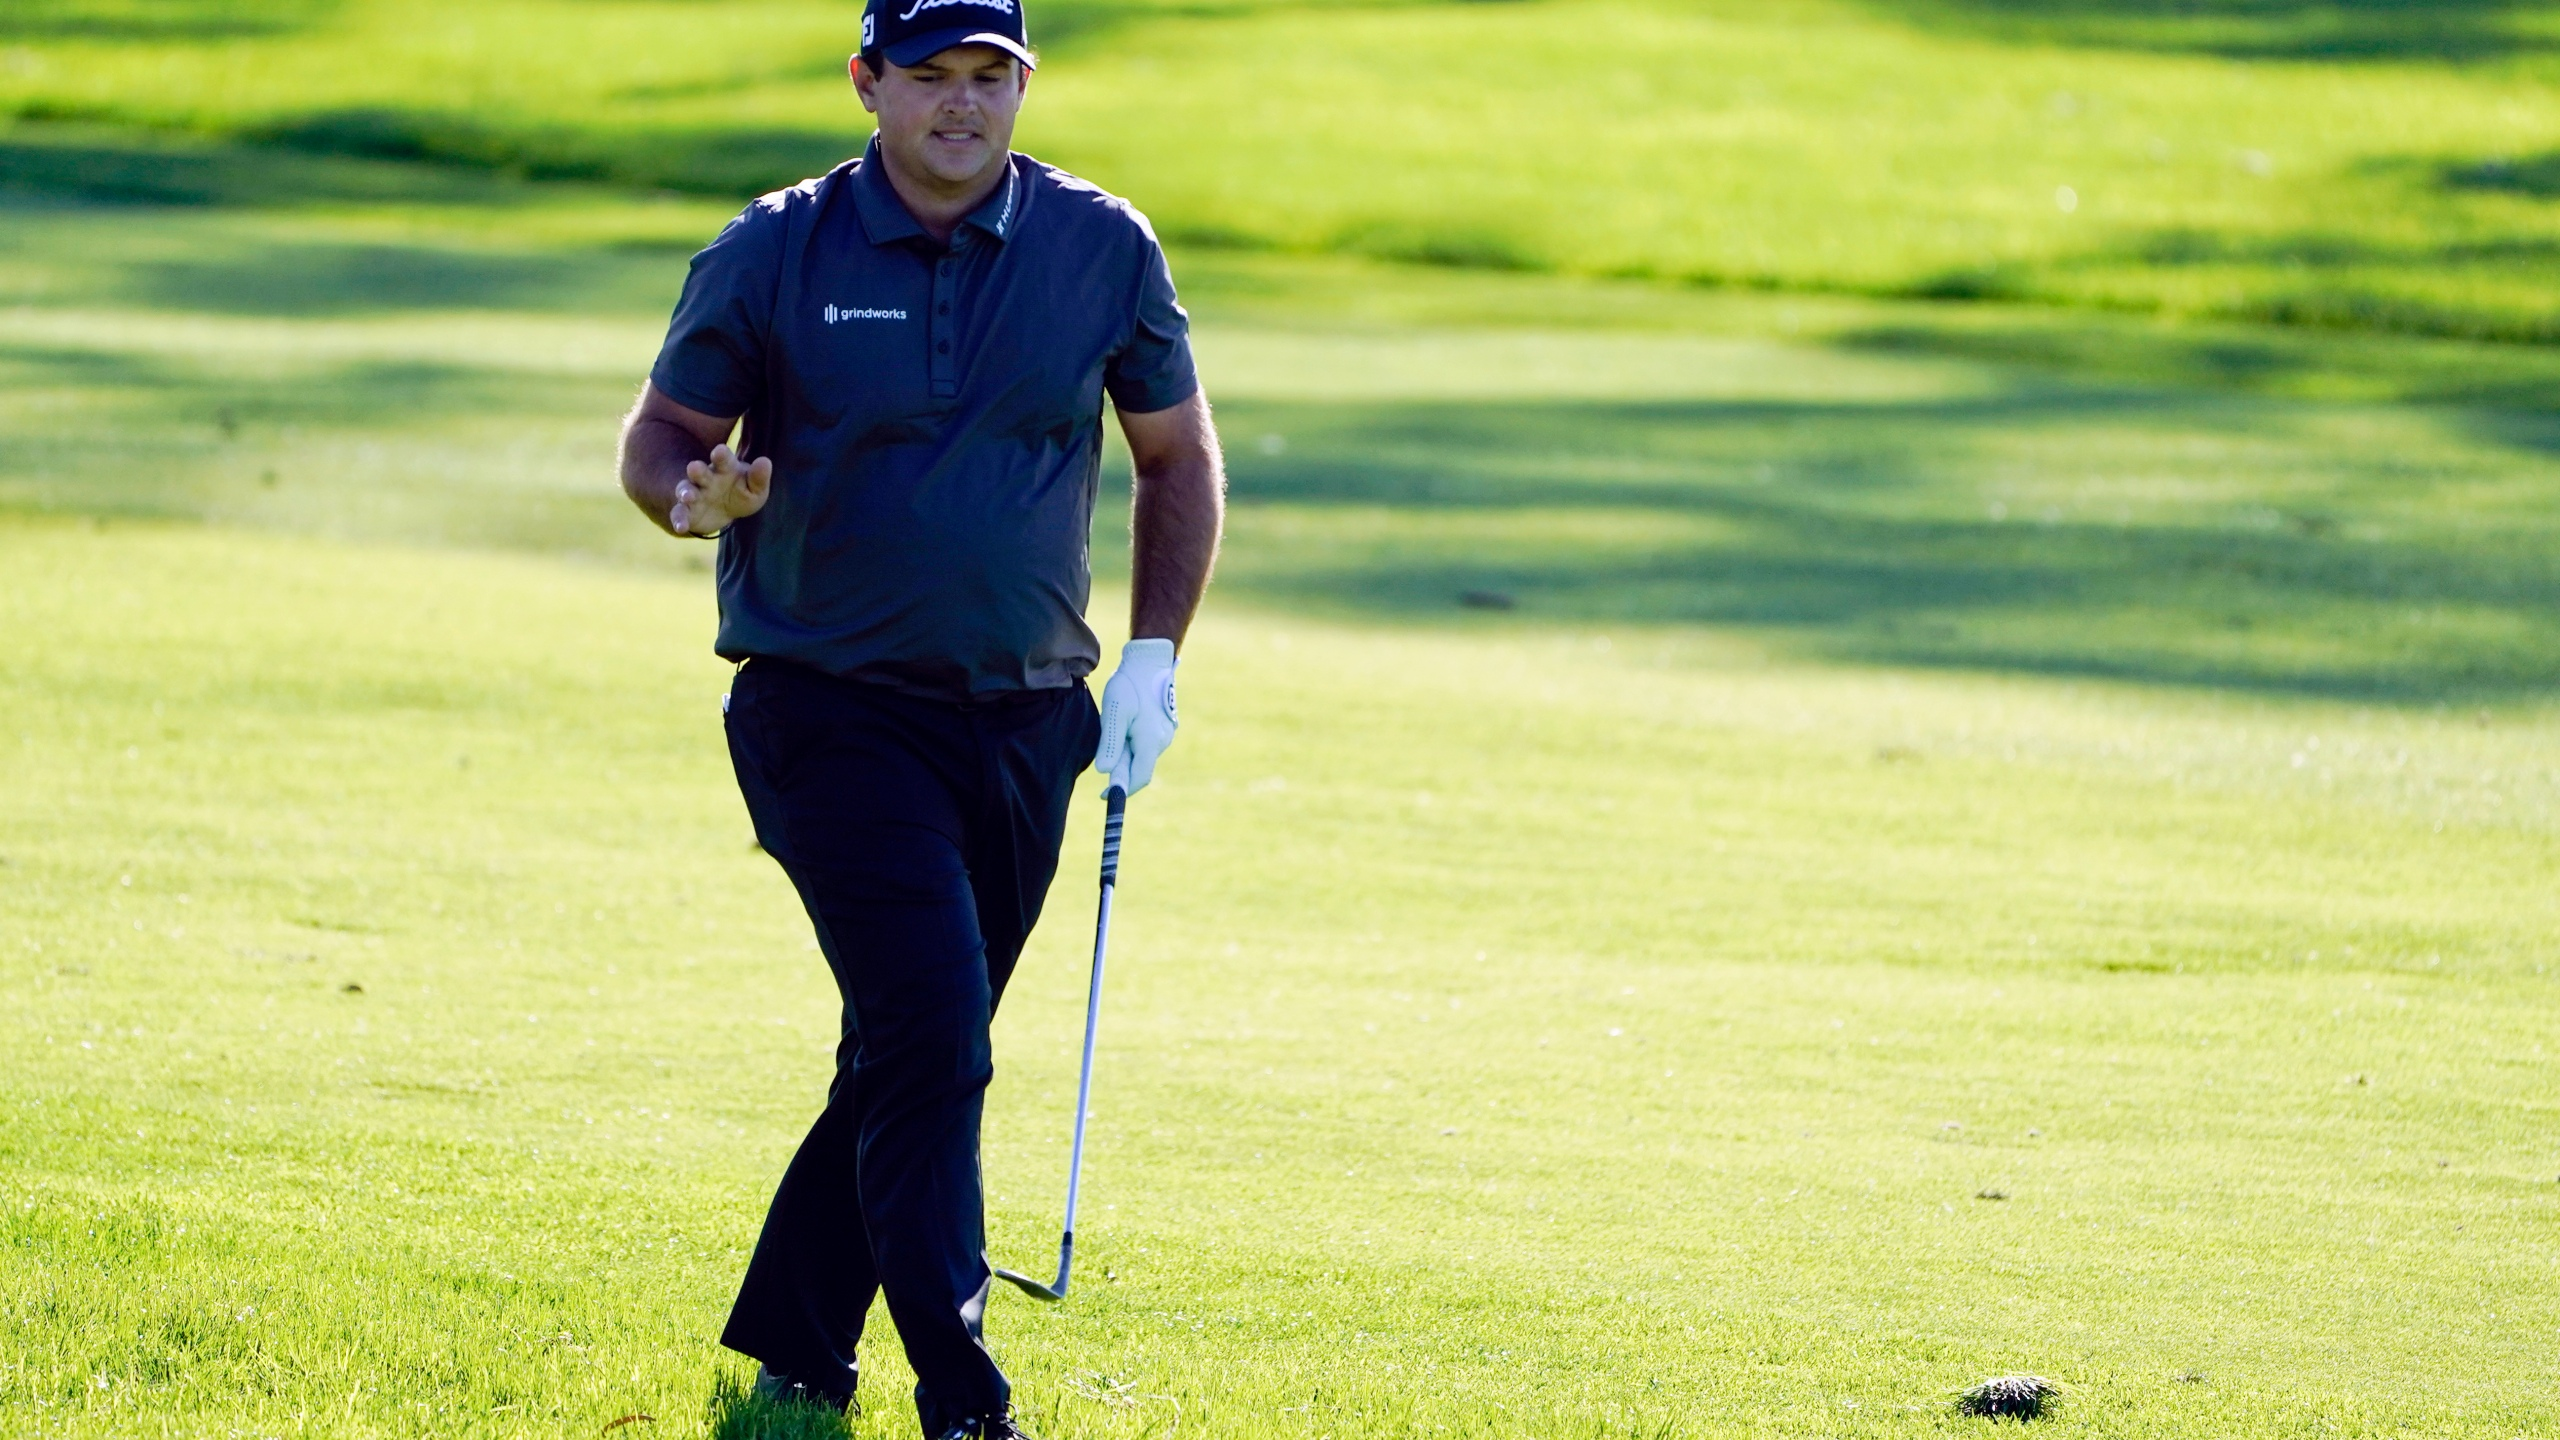 Golfer Patrick Reed Commits To 2021 Travelers Championship Wtnh Com